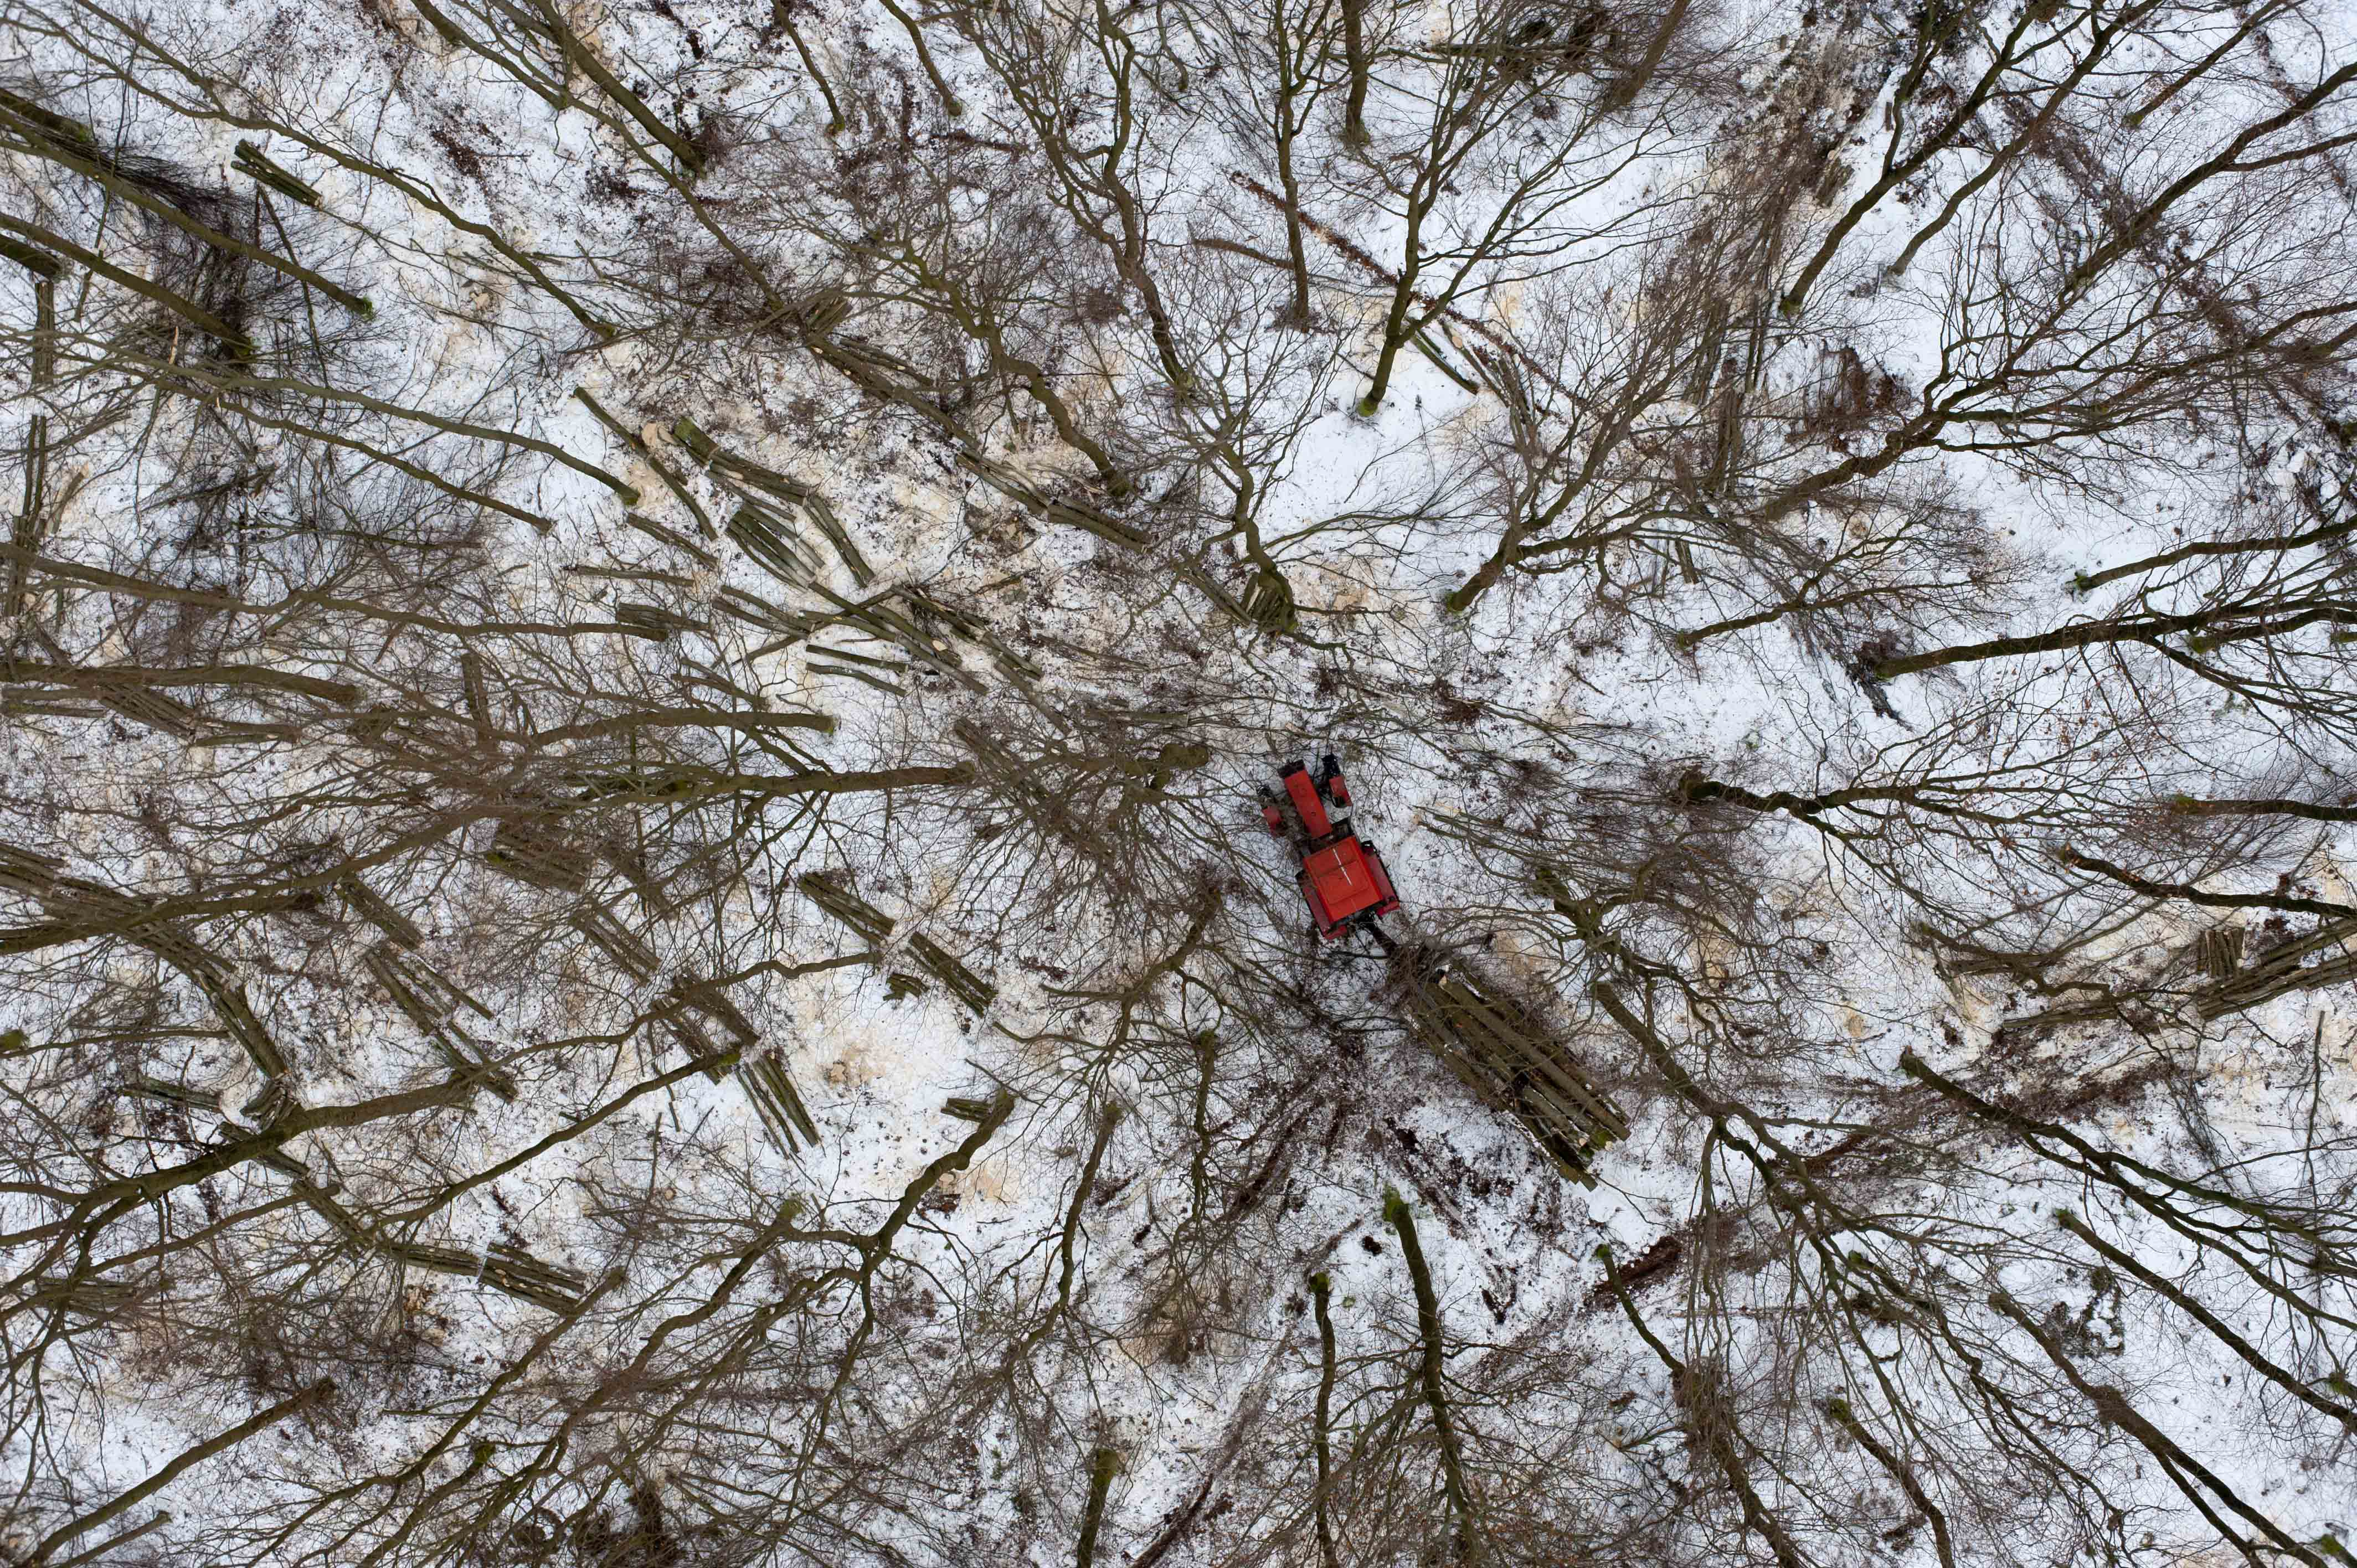 Snow surrounds felled trees as in a forest near Gdynia, Poland.